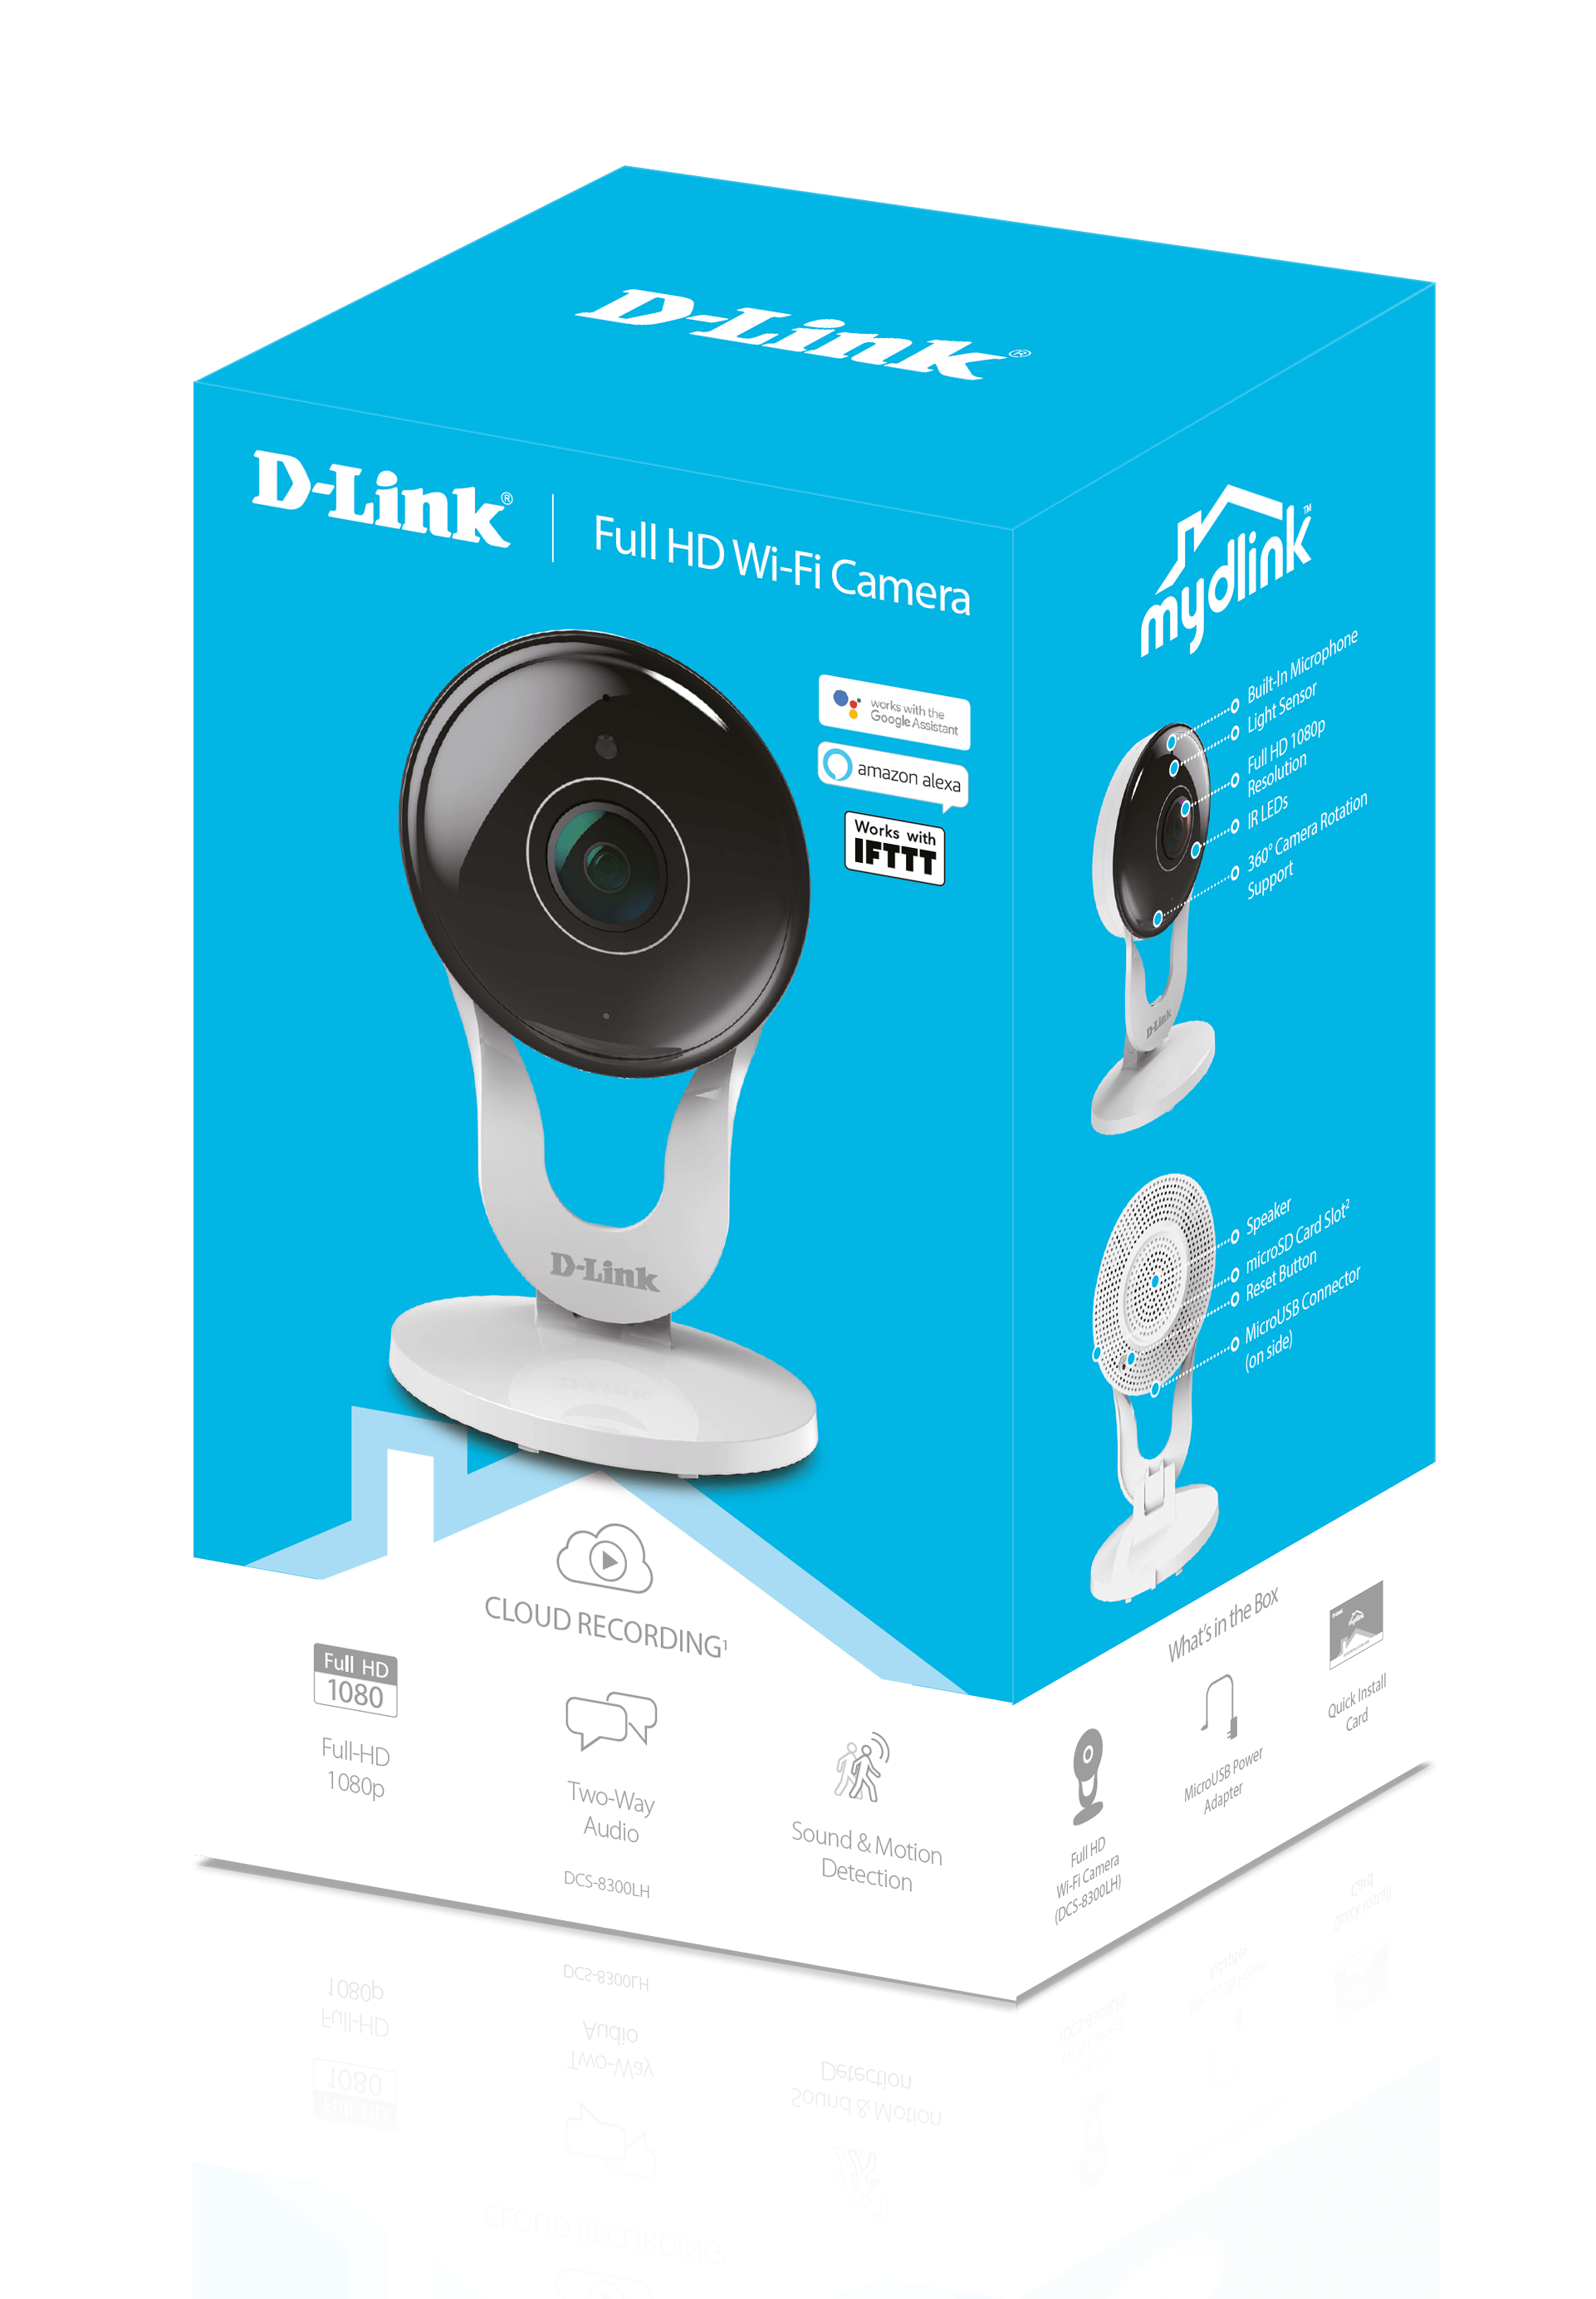 The DCS-8300LH mydlink Full HD indoor Camera box